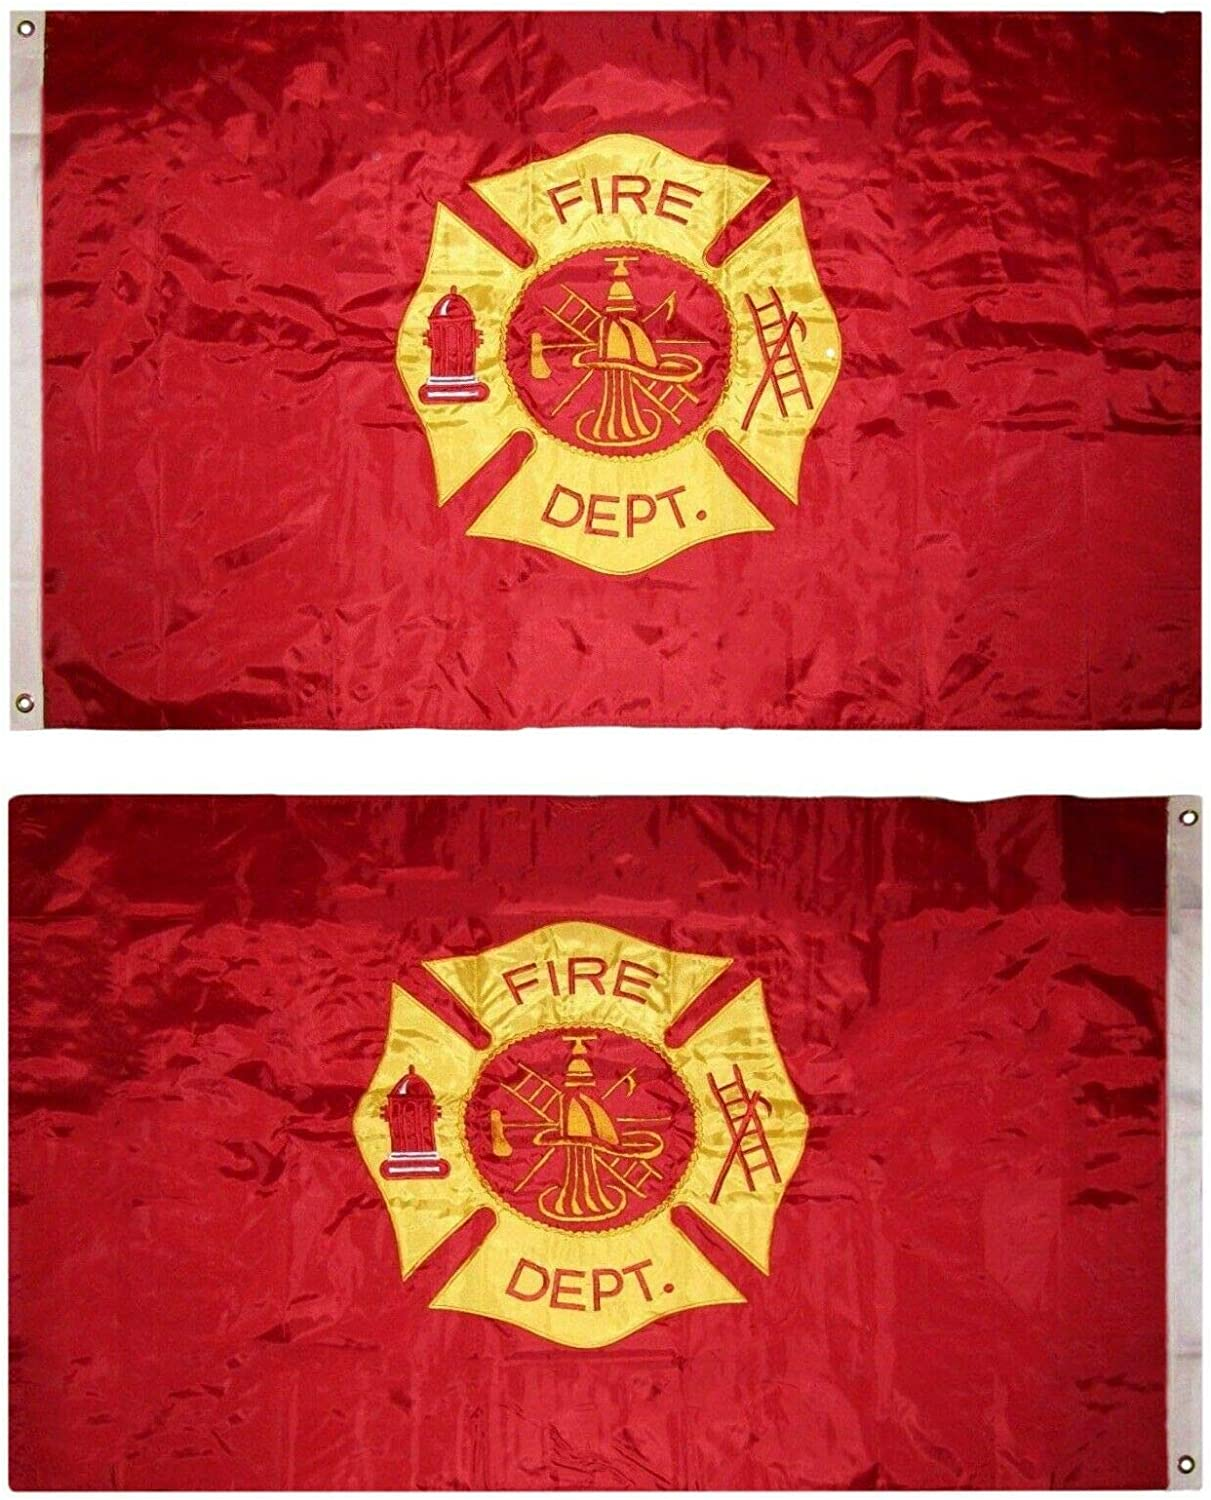 Zenda 3x5 Embroidered Fire Sided Long-awaited Double New arrival Fighter Department